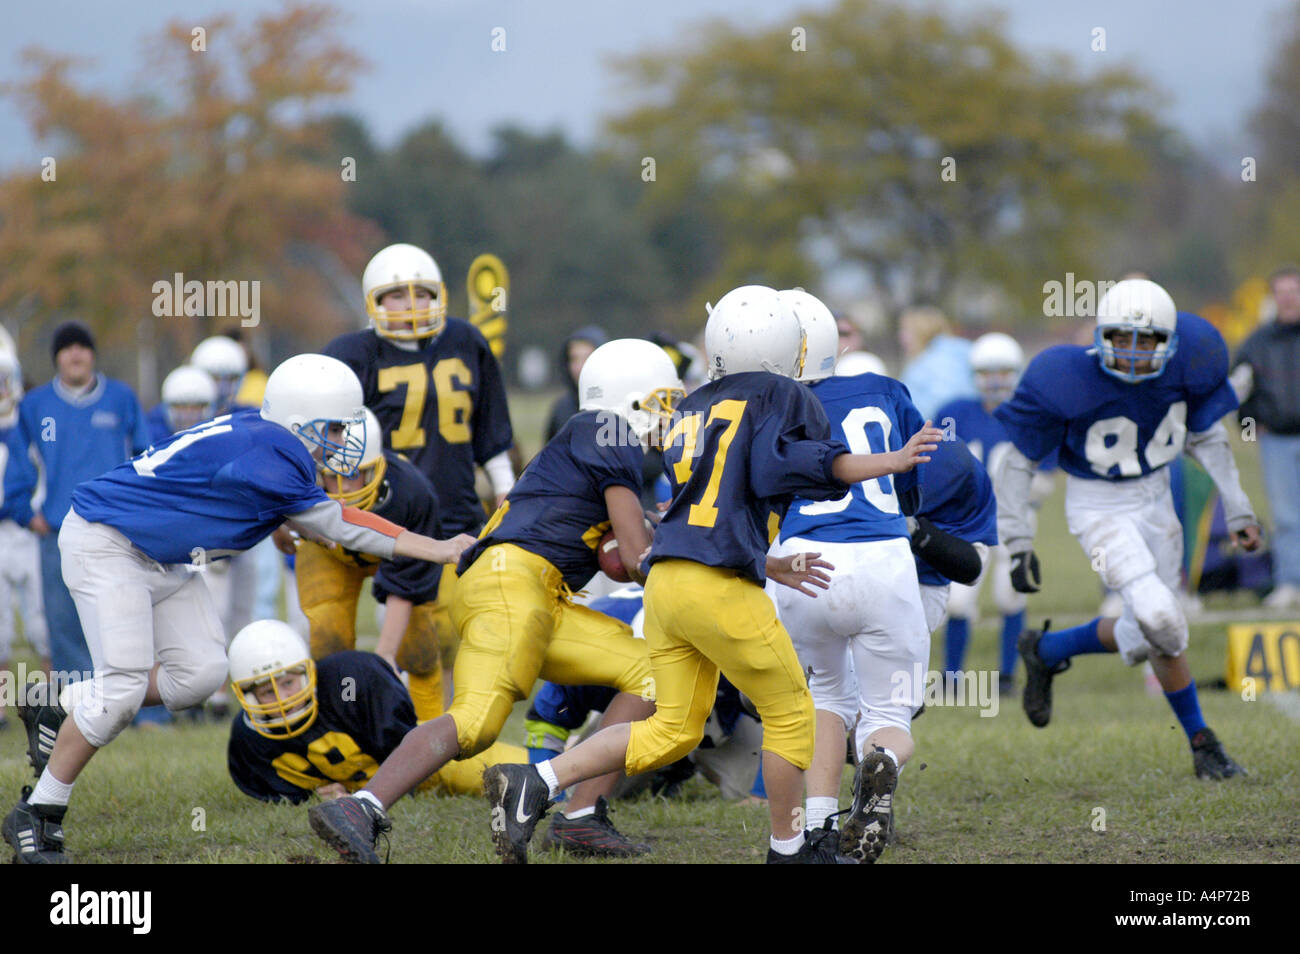 Middle School football action ages 12 to 14 male players - Stock Image